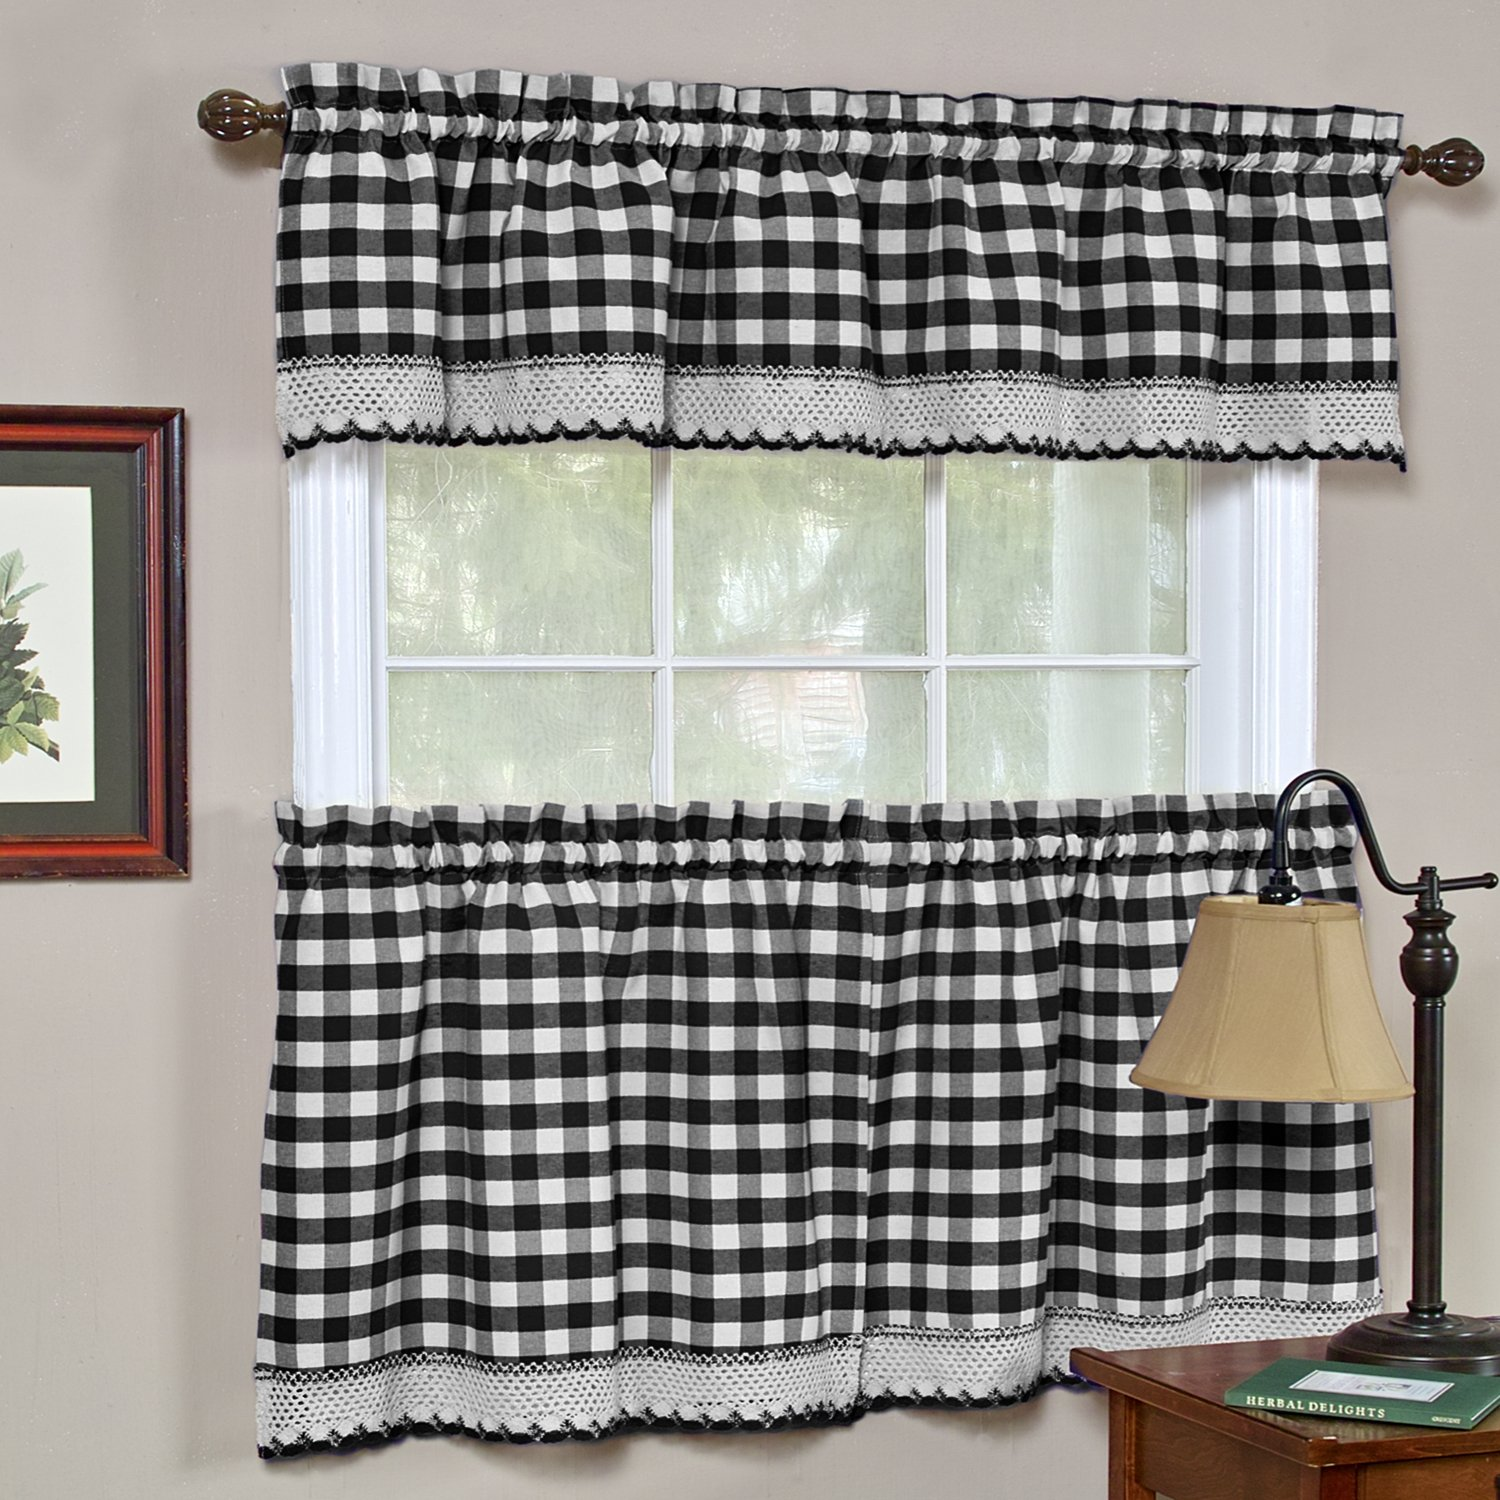 Amazon com achim home furnishings buffalo check kitchen curtain tier black white 58 x 36 inch set of 2 home kitchen